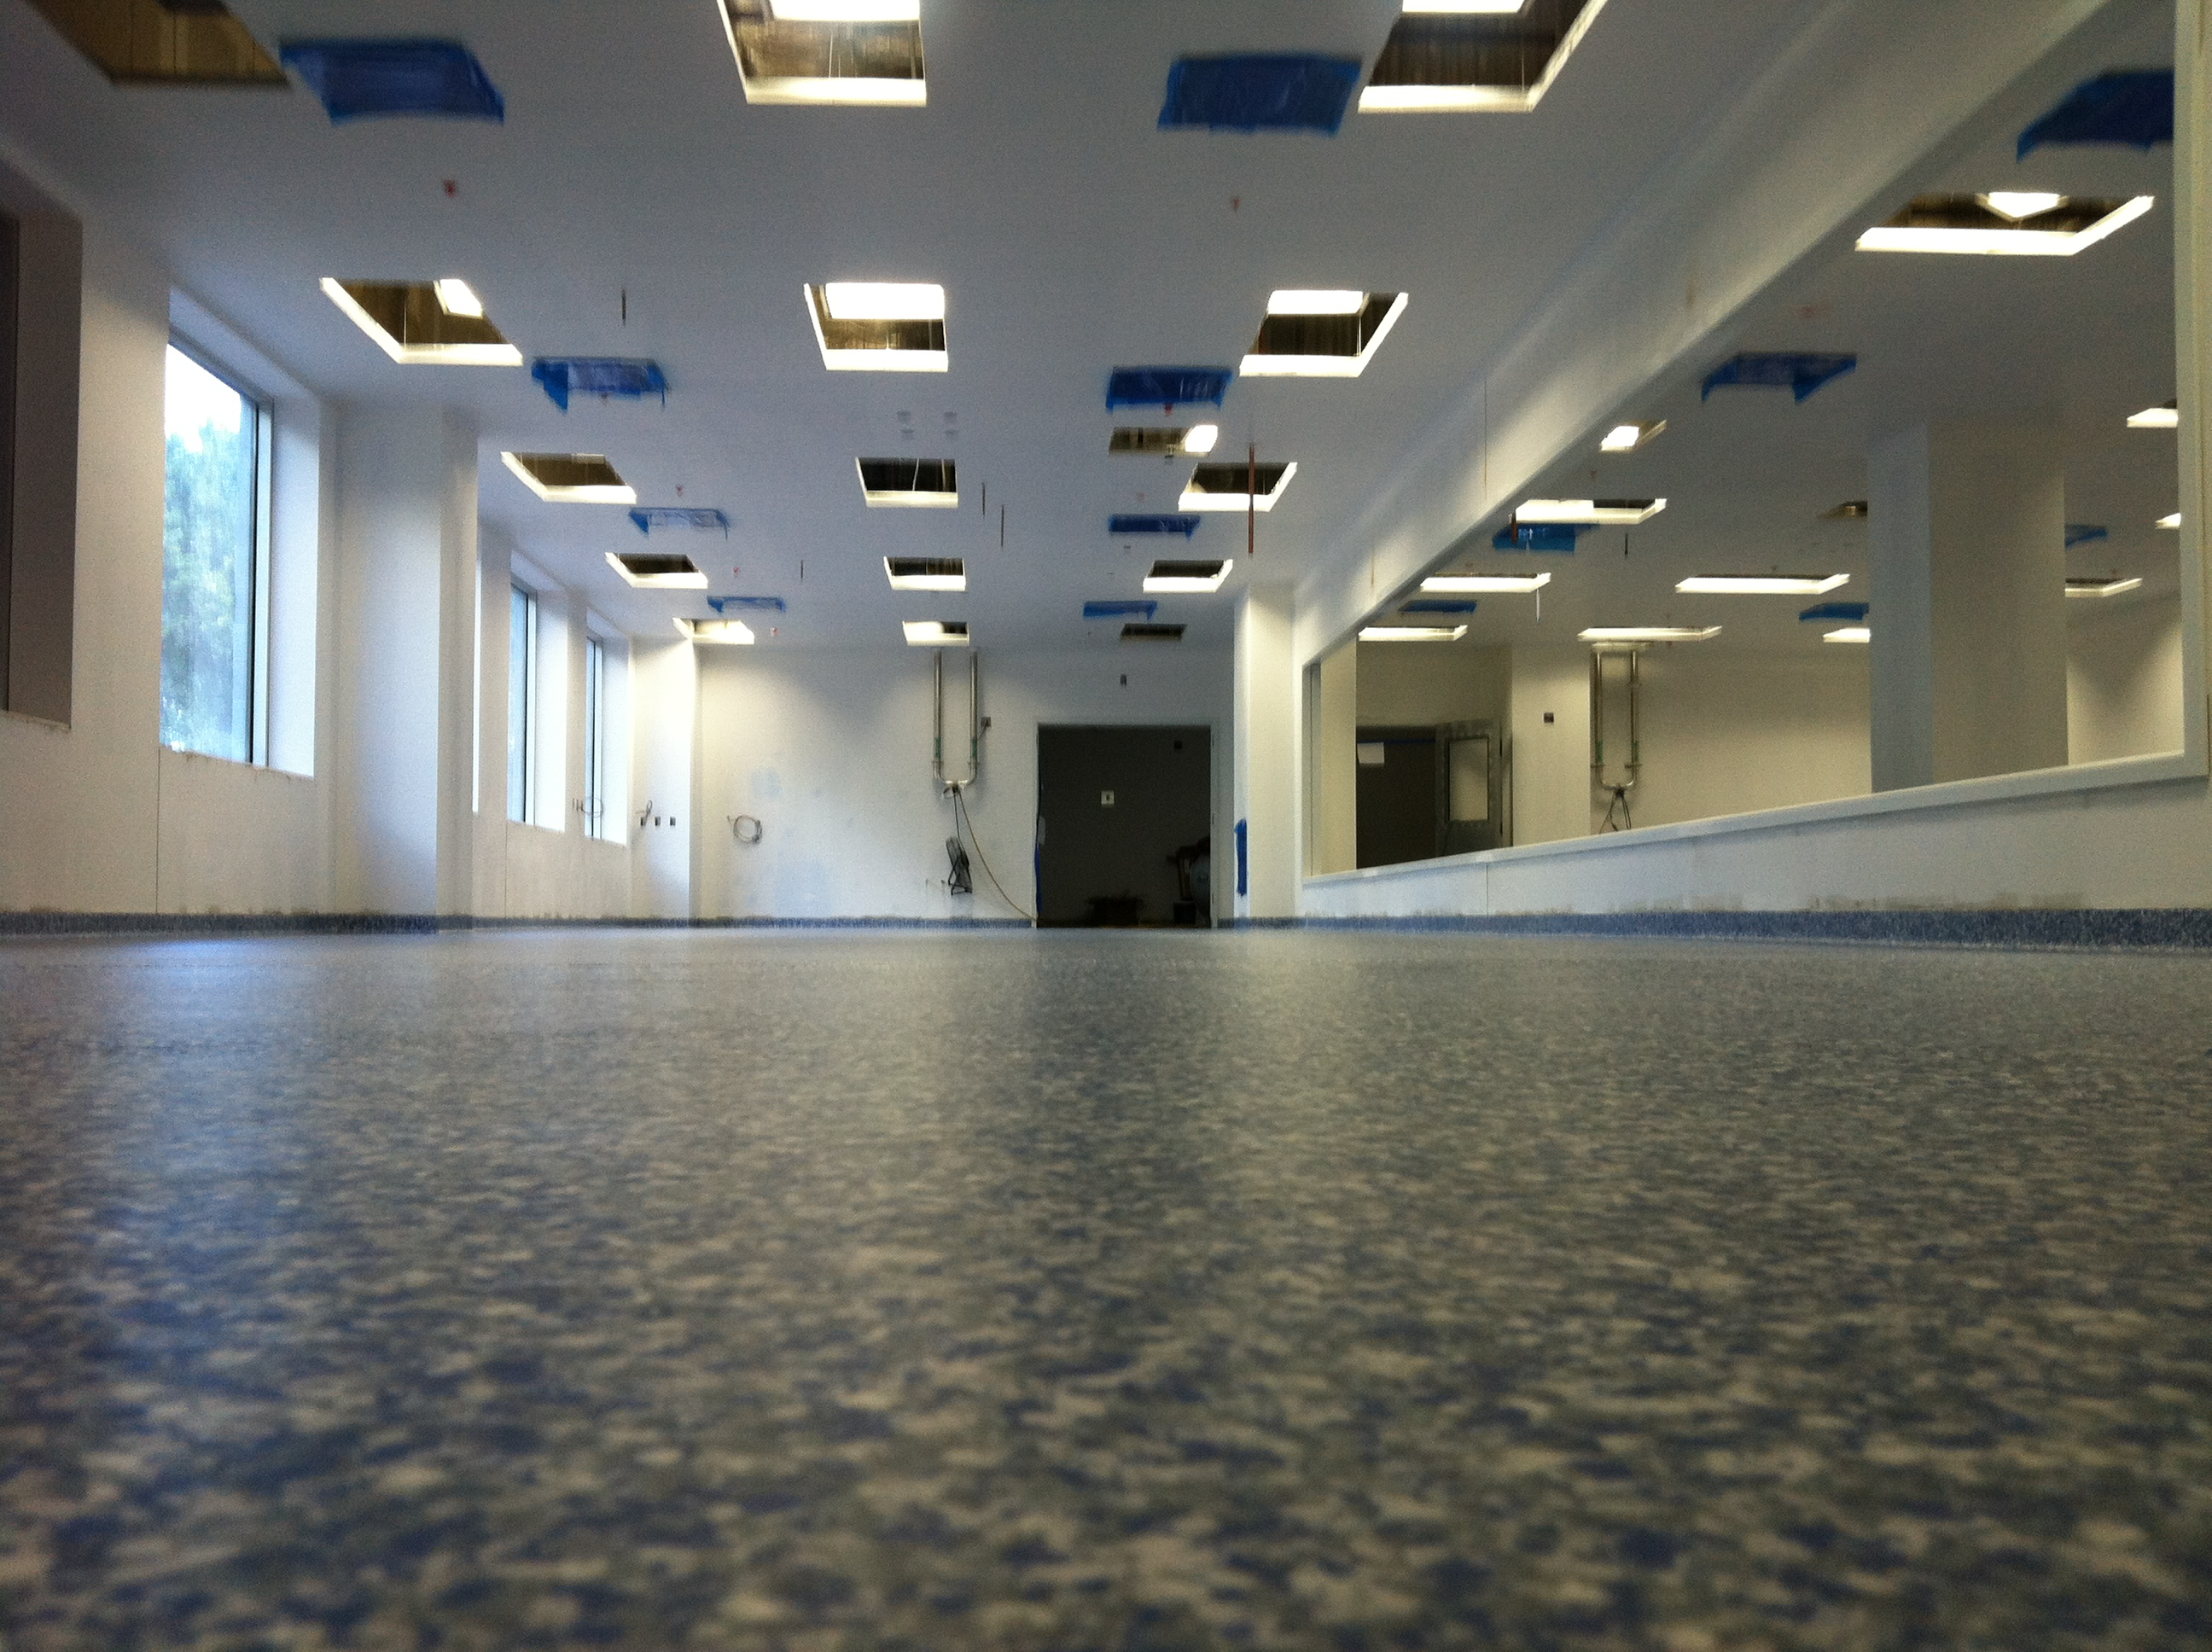 Plastifloor flakes floor, Qiagen USA